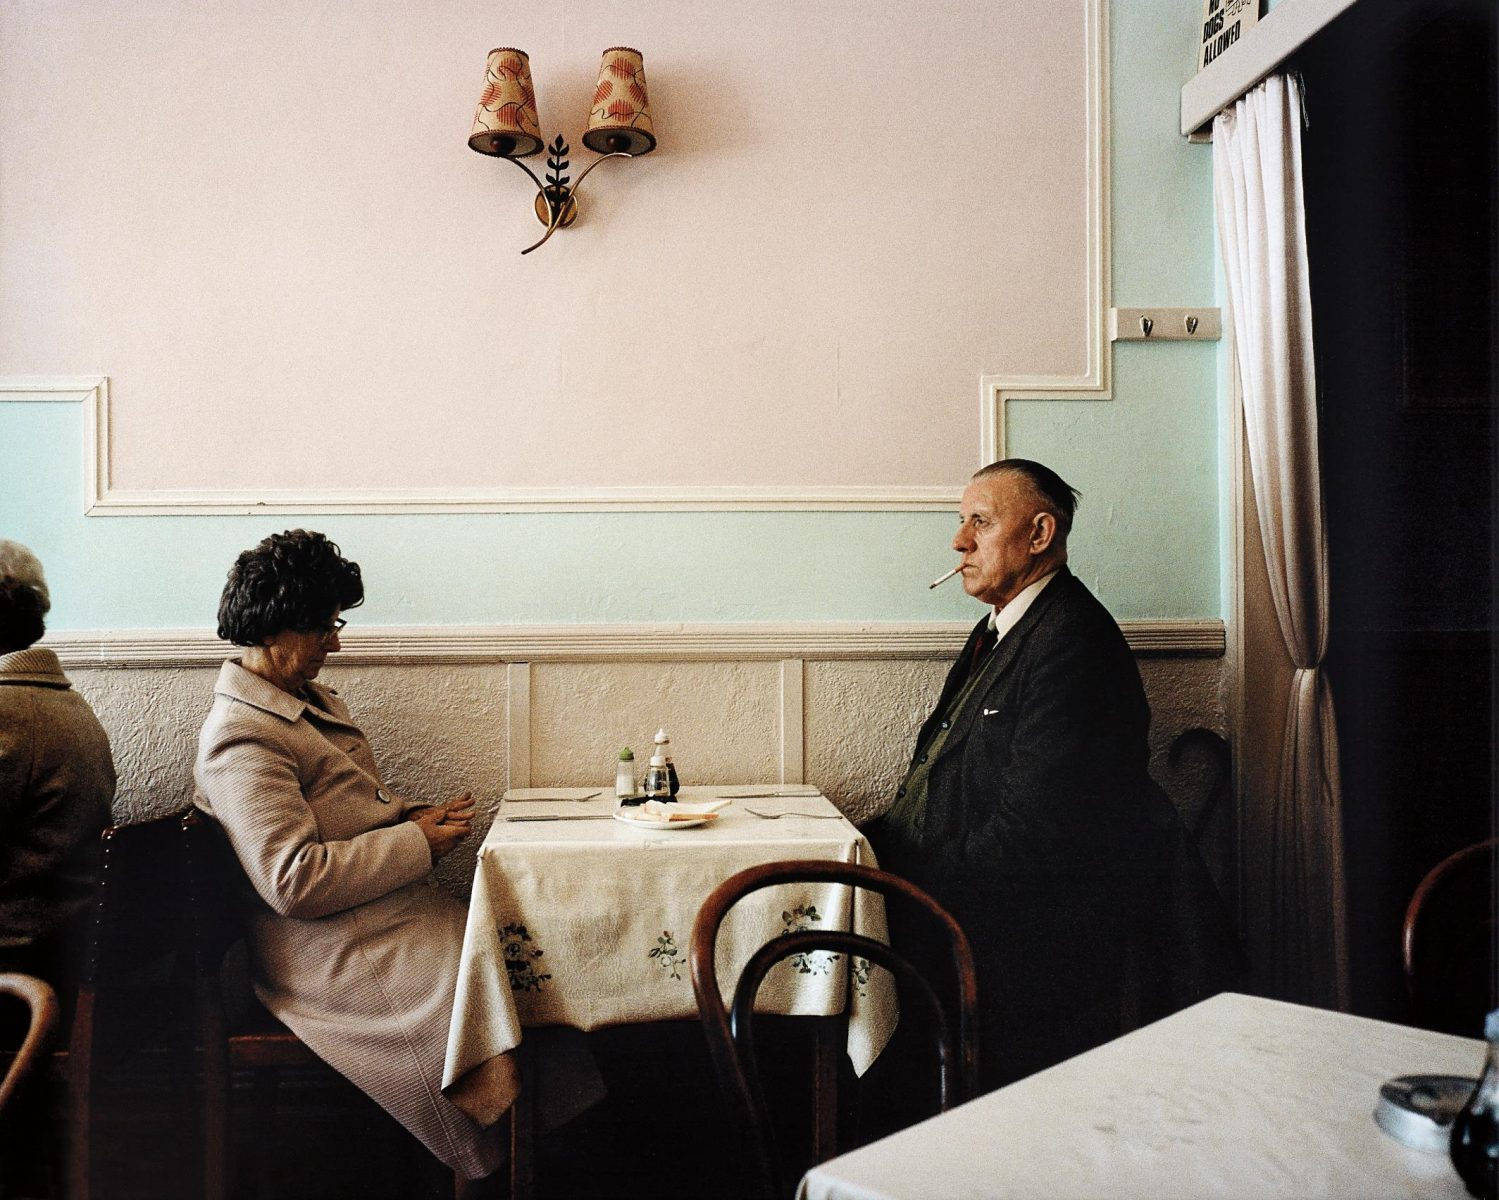 Color photo by Martin Parr elderly couple dining, New Brighton, England, 1980s